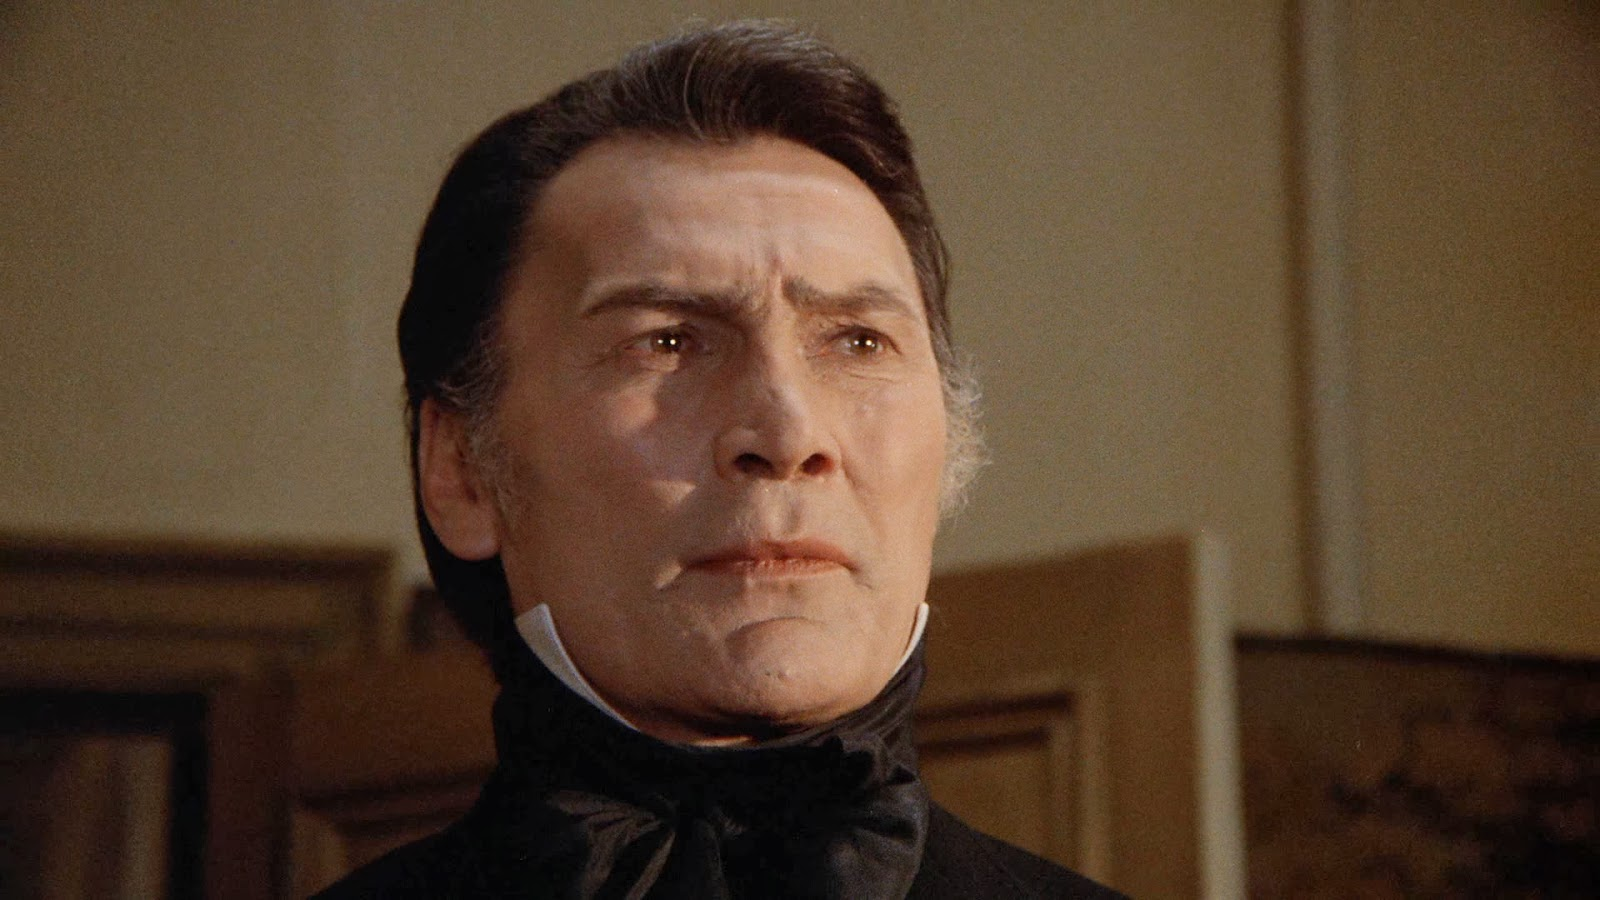 Jack Palance as Count Dracula in Dracula (1974)